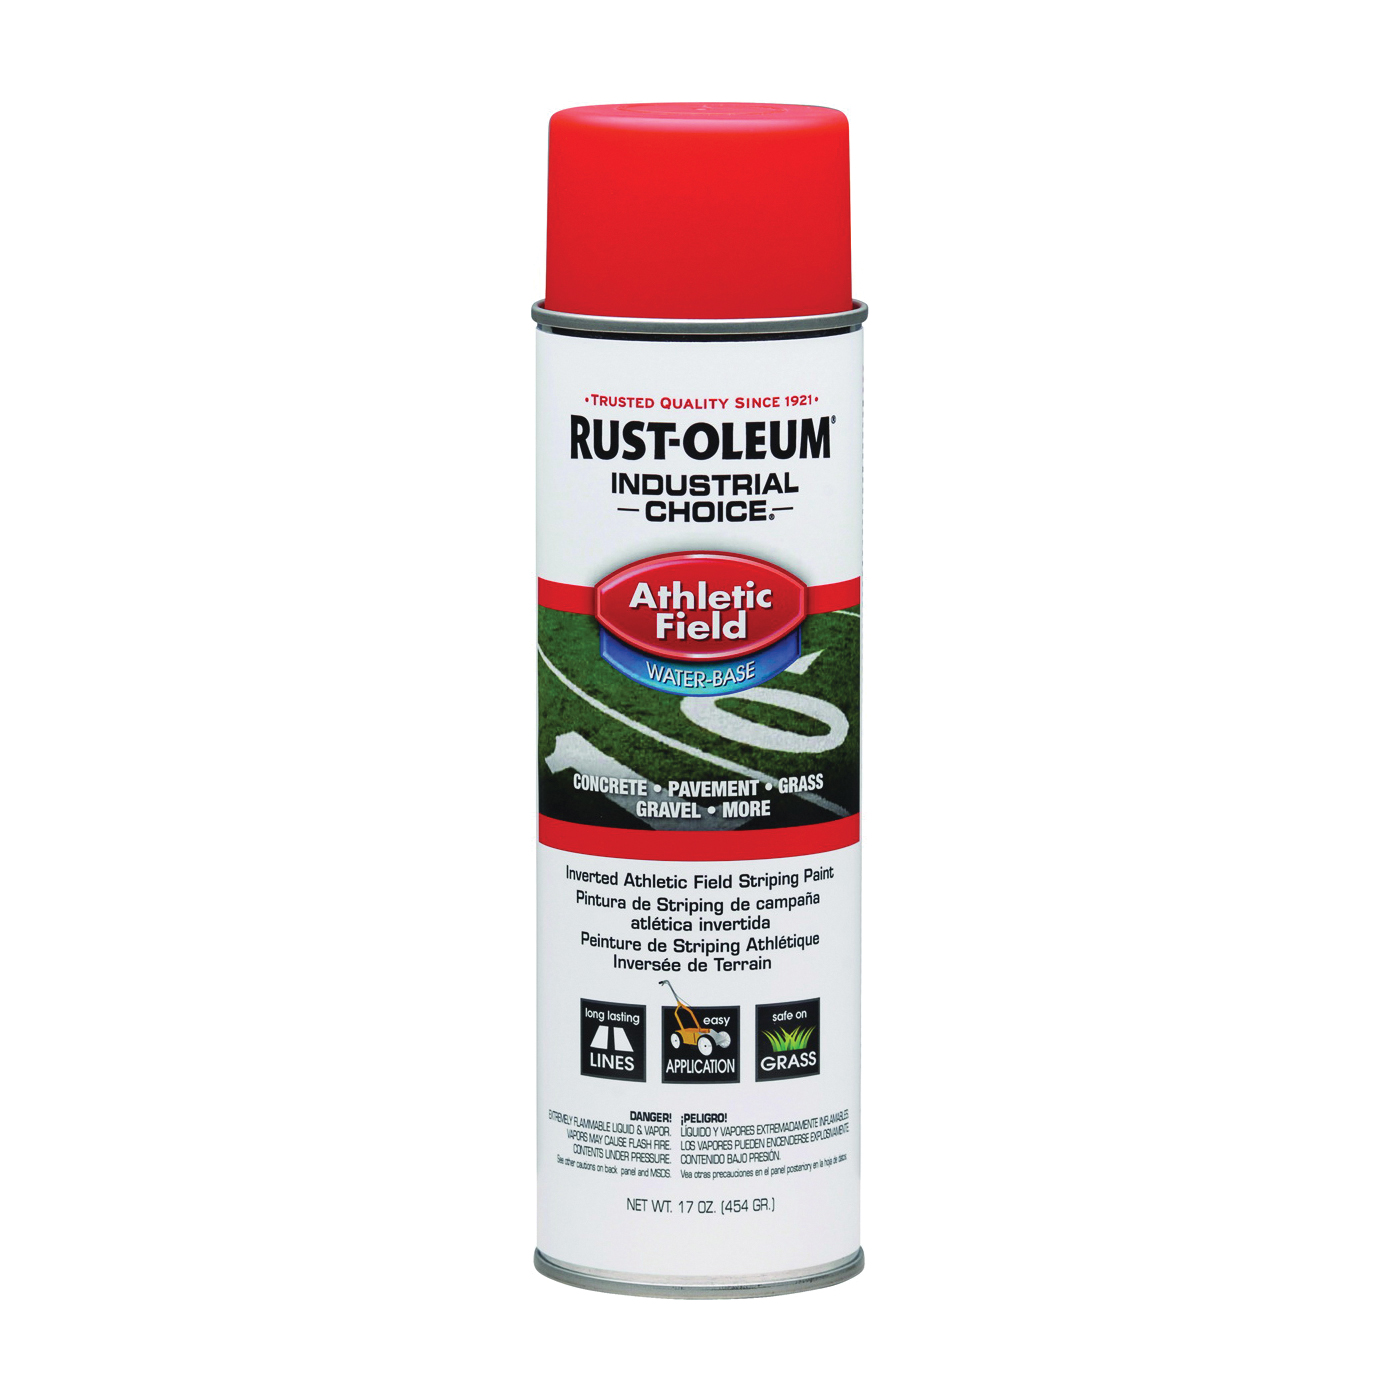 Picture of RUST-OLEUM INDUSTRIAL CHOICE 206044 Athletic Field Striping Paint, Orange, 17 oz, Aerosol Can